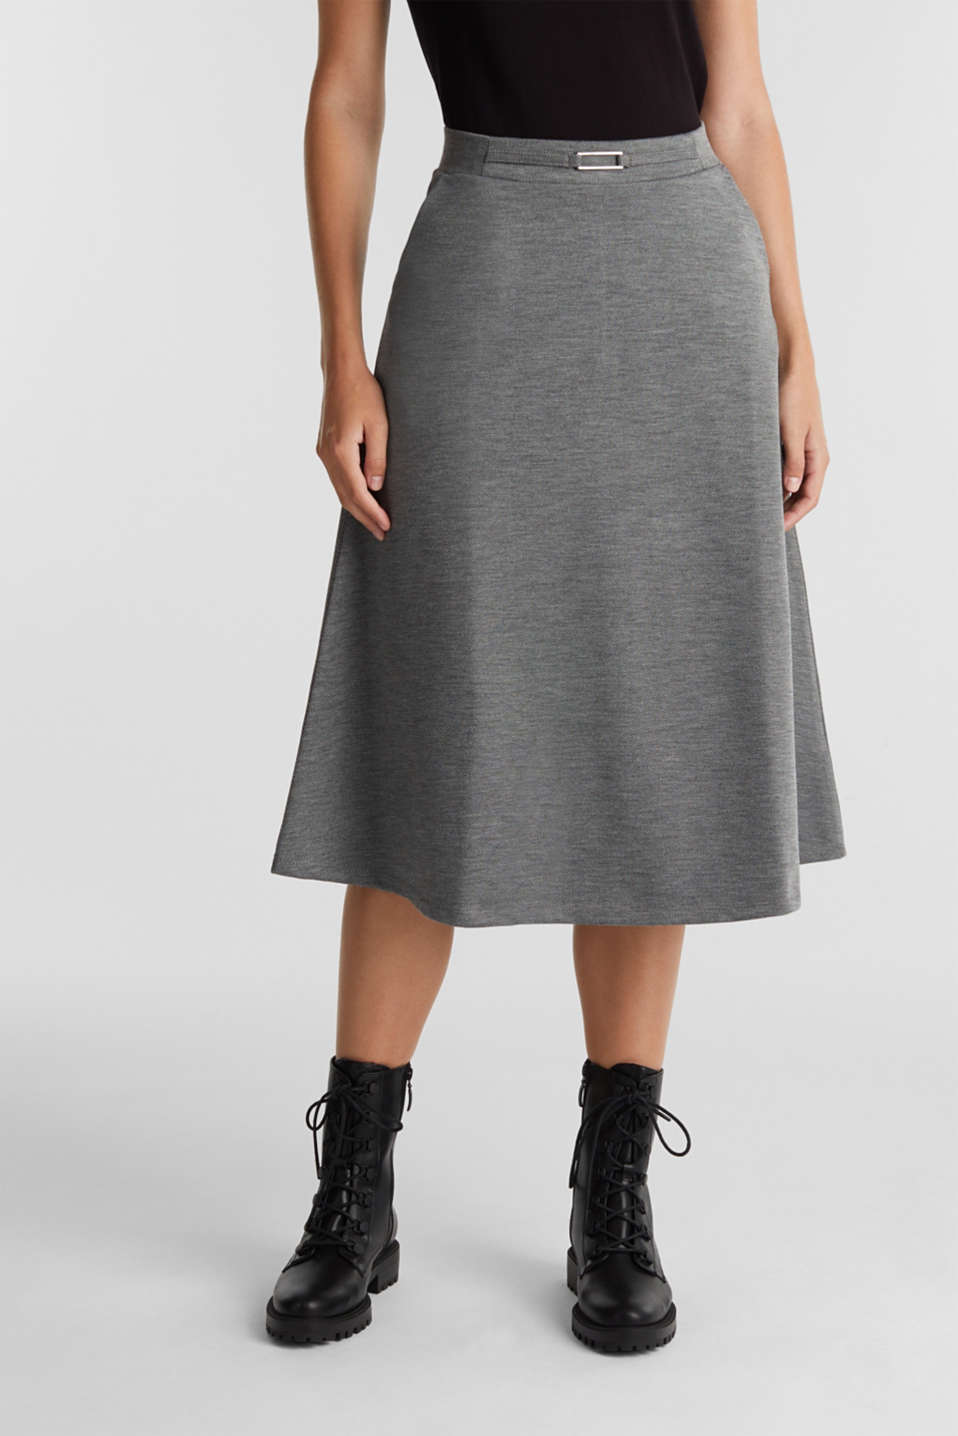 Esprit - Jersey skirt with stretch for comfort